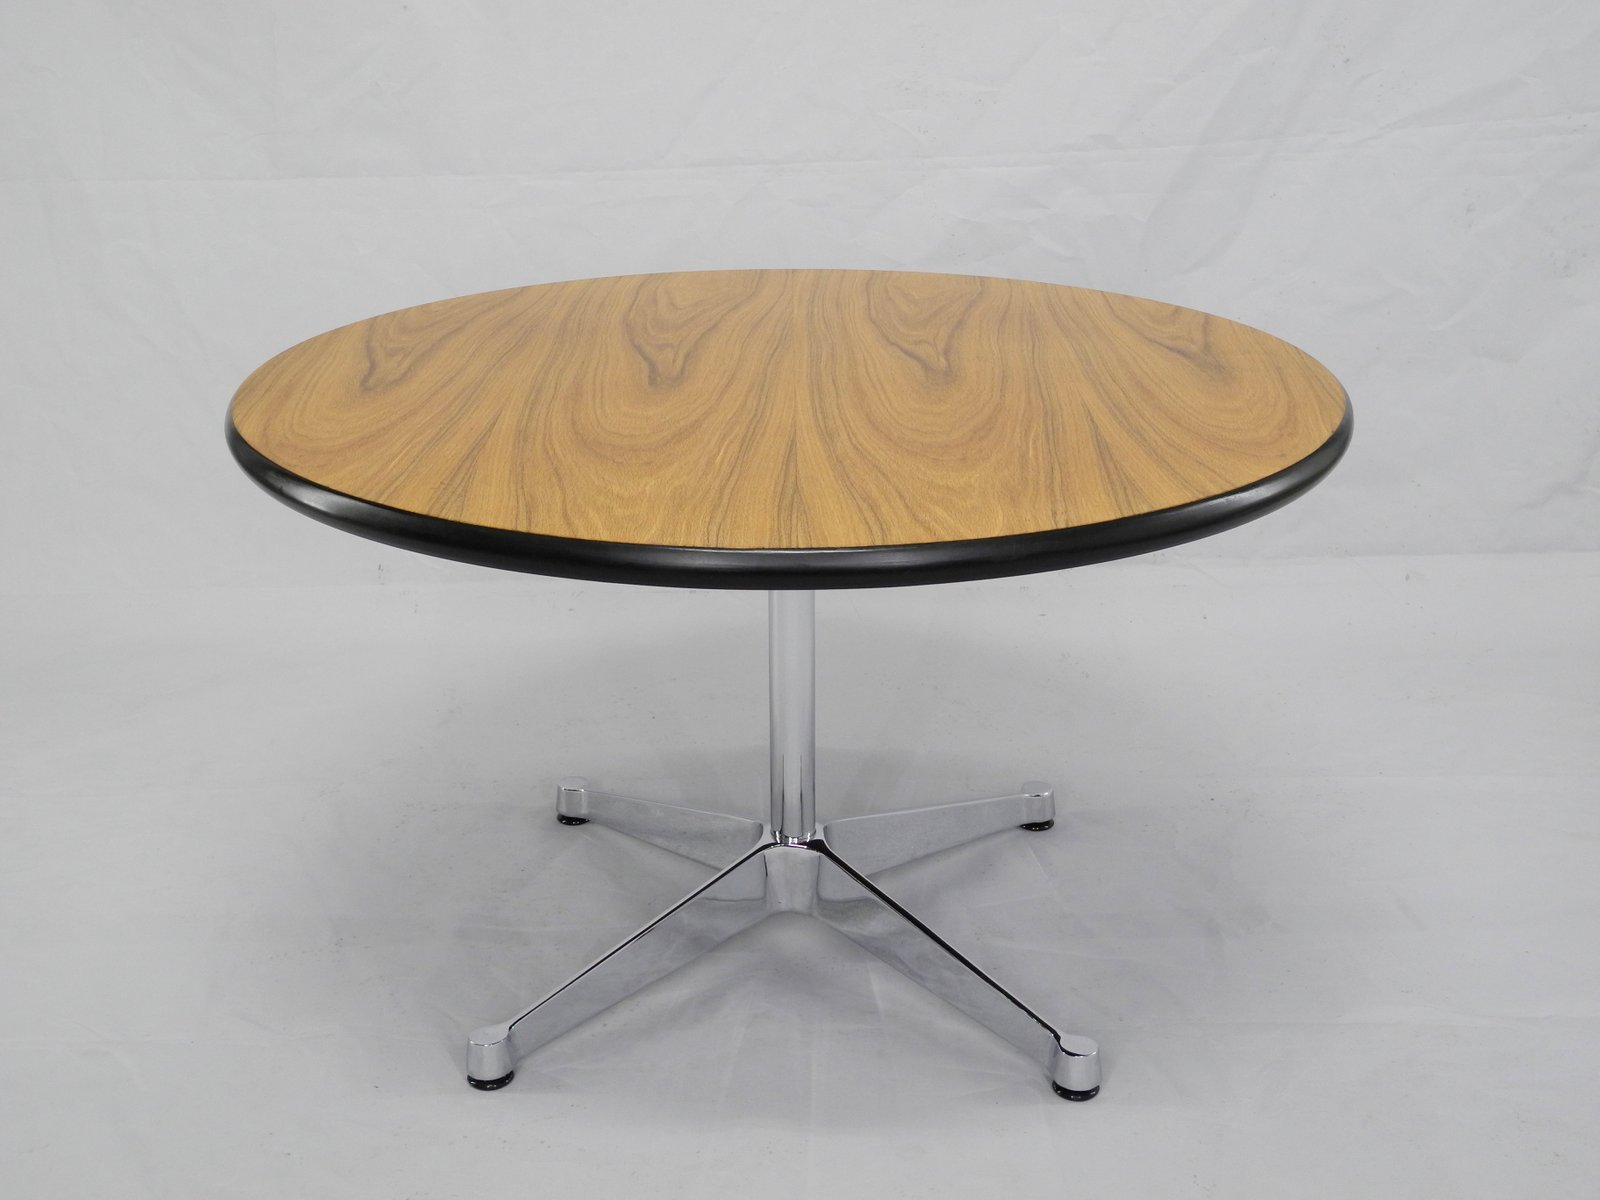 coffee table by charles & ray eames for vitra, 1983 for sale at pamono